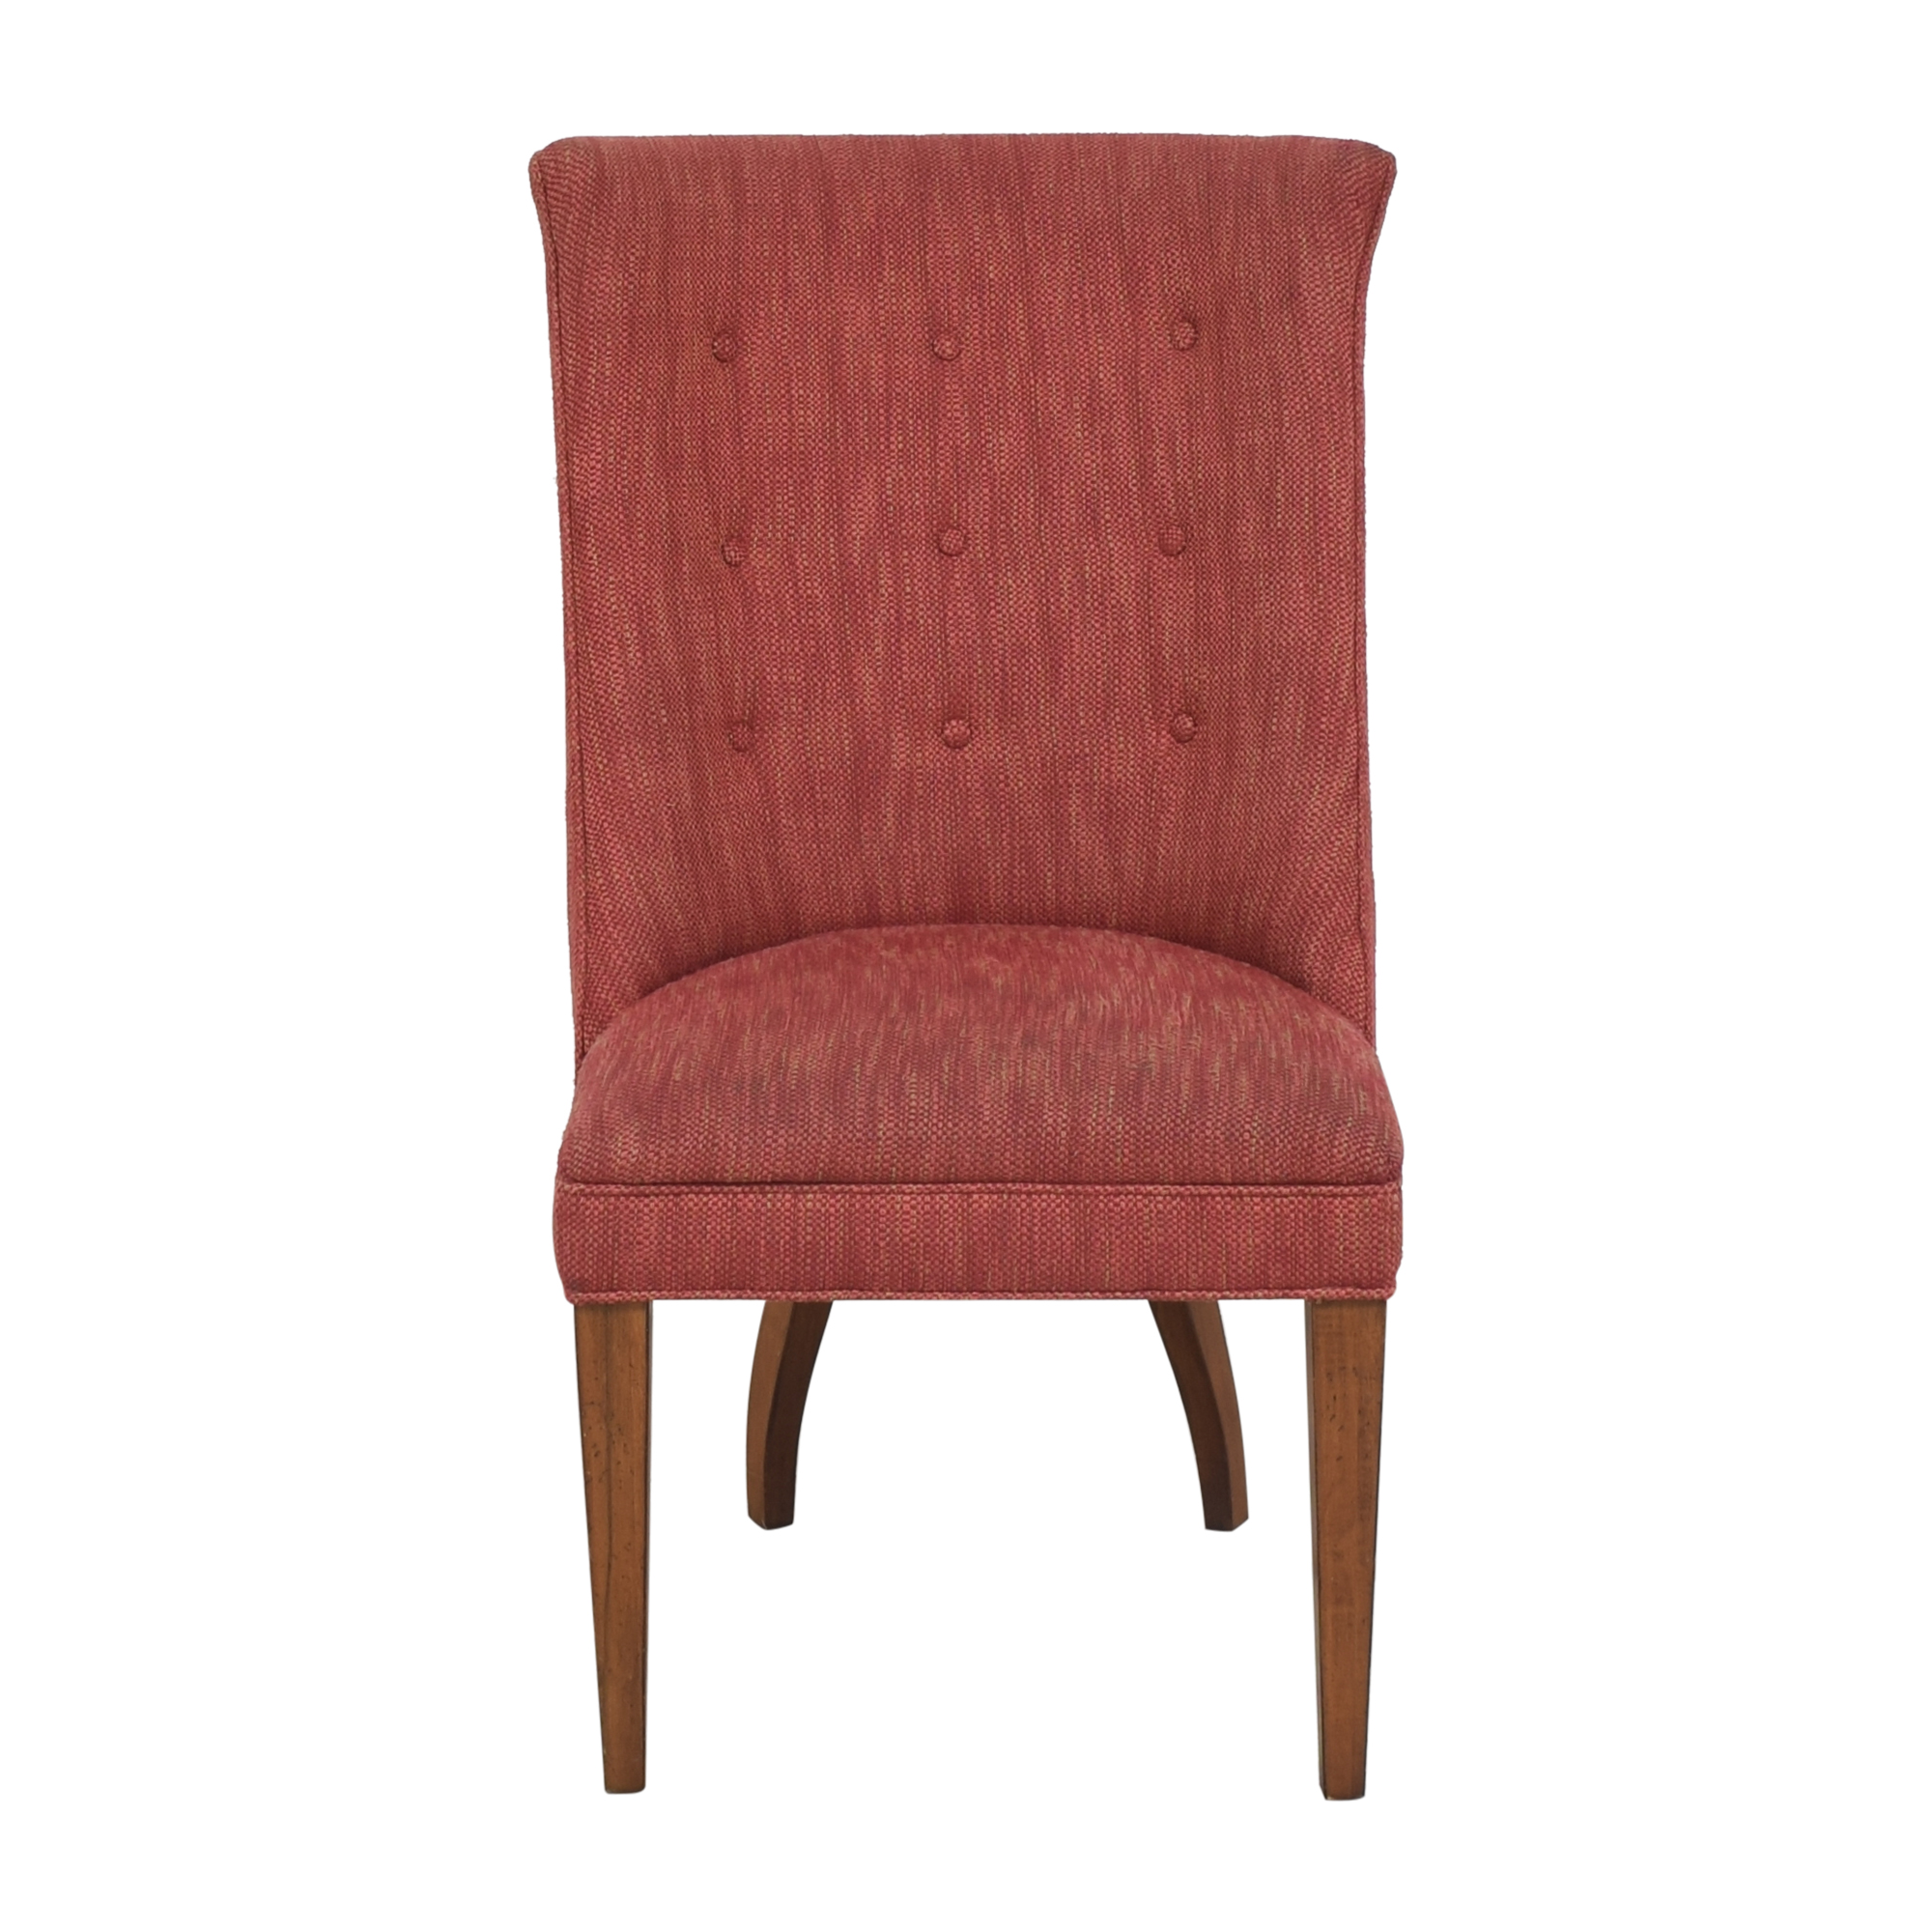 Liz Claiborne Liz Claiborne Tufted Accent Chair Accent Chairs